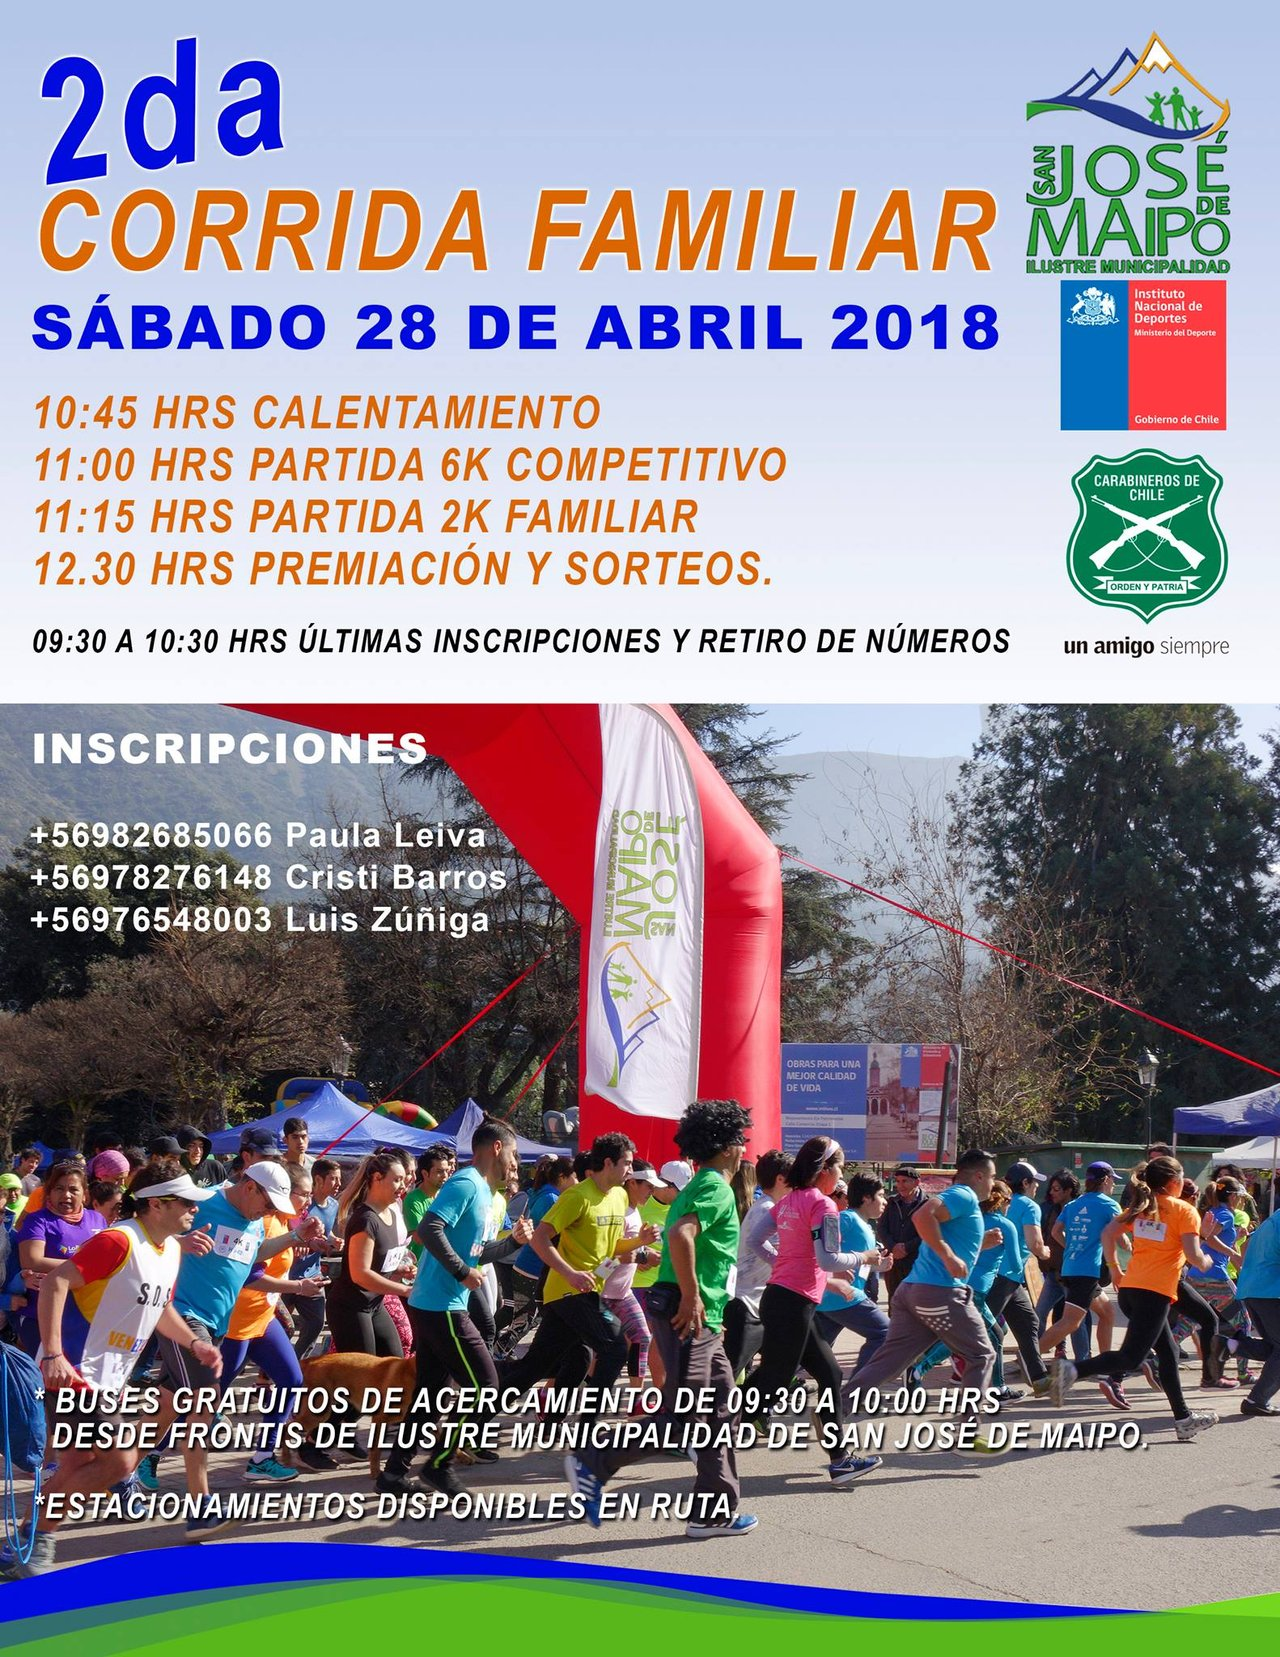 Segunda Corrida Familiar y Competitiva